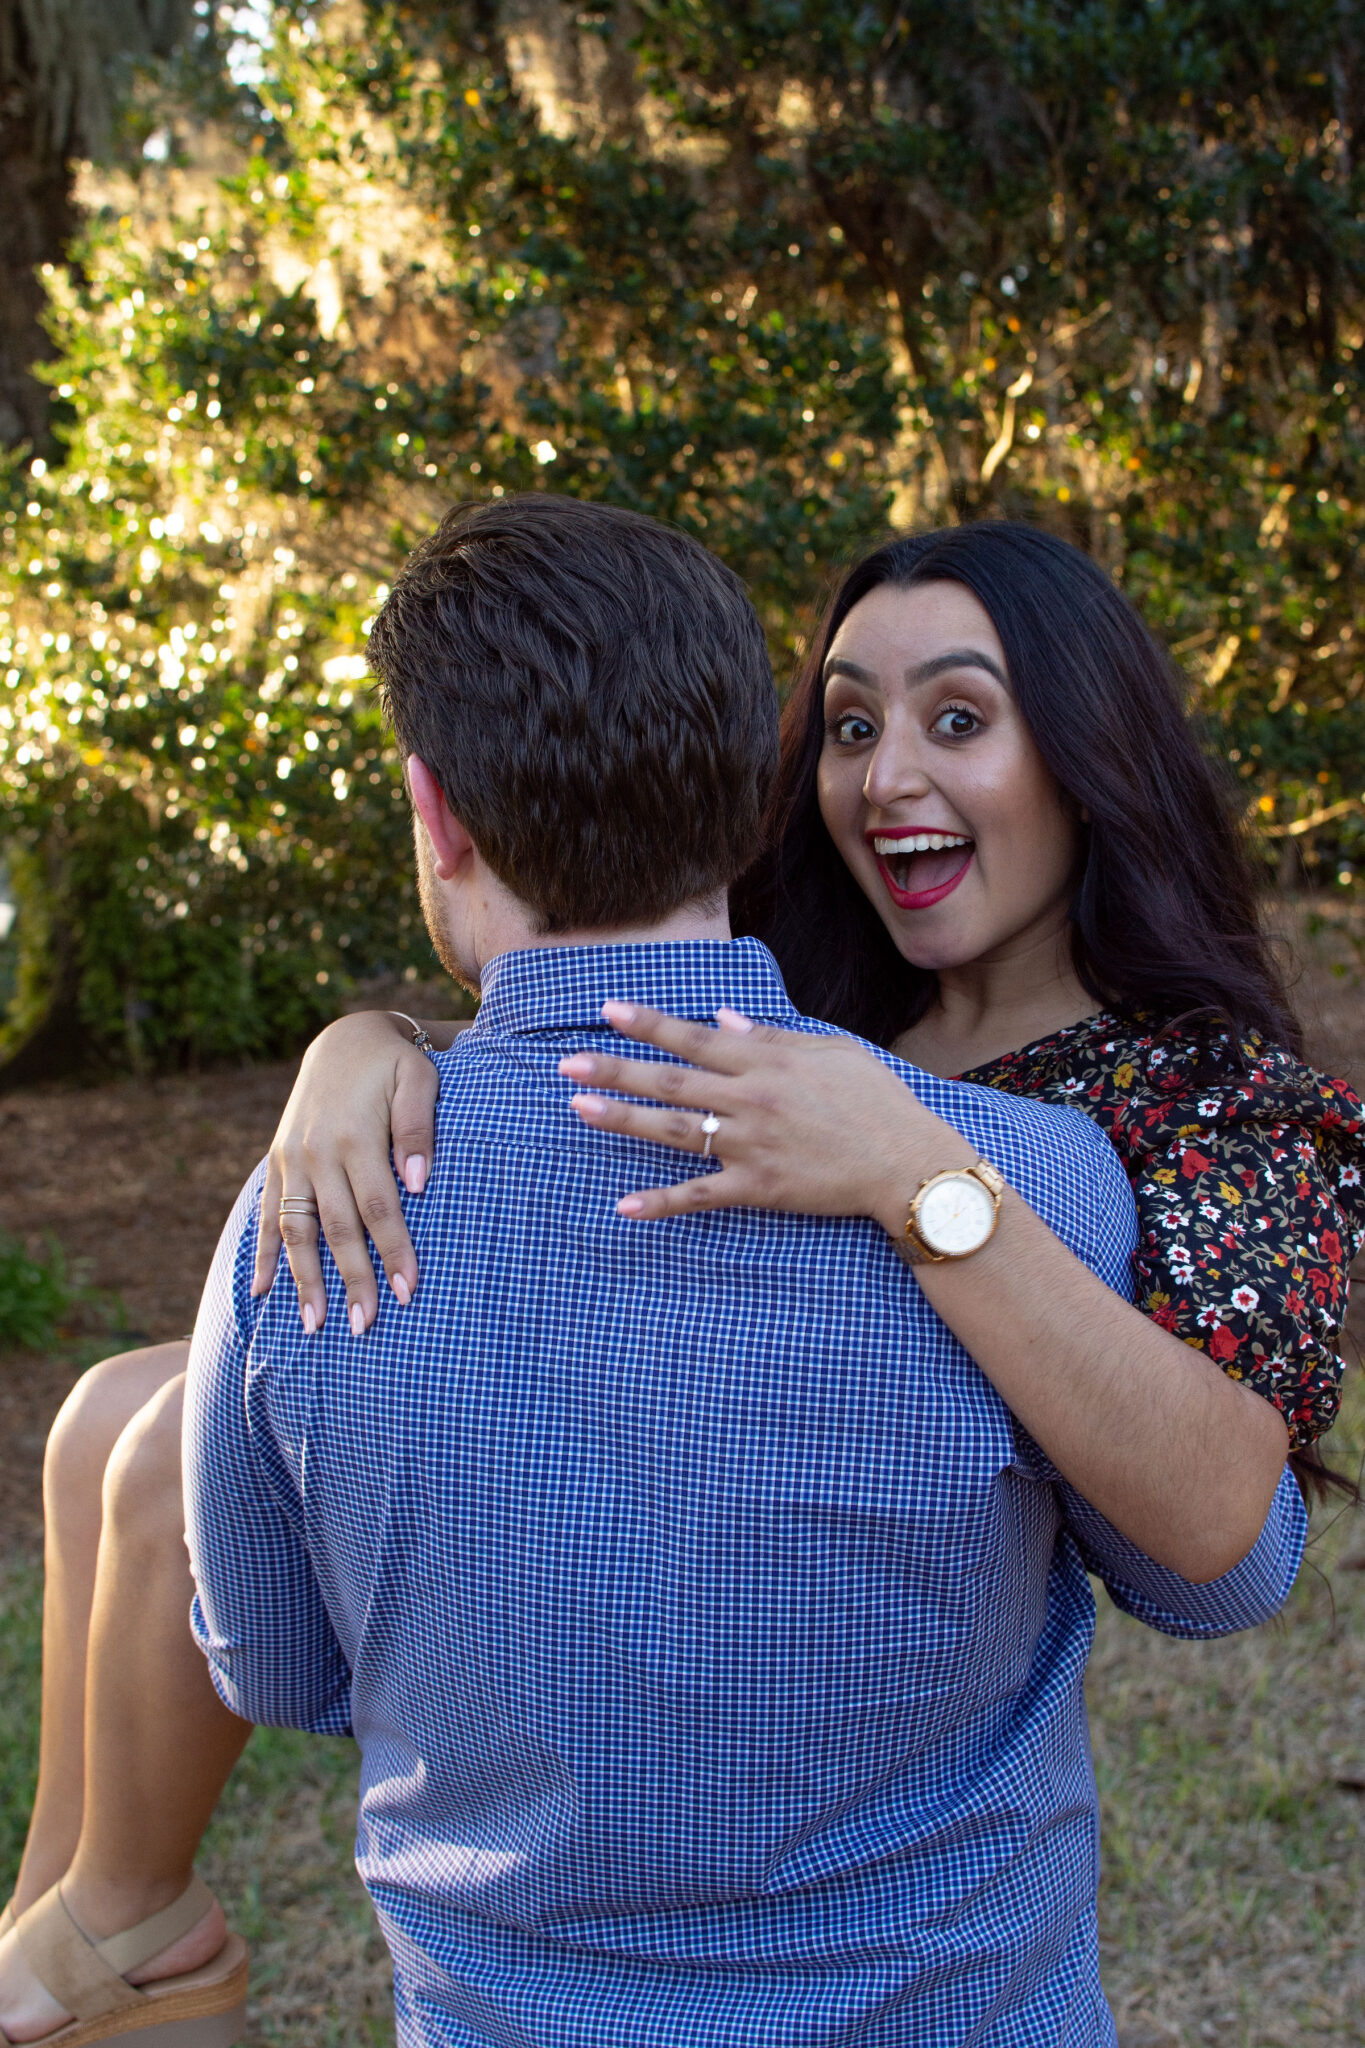 picture from behind man wearing blue long sleeve shirt holding his fiance while she smiles big showing off her engagement ring